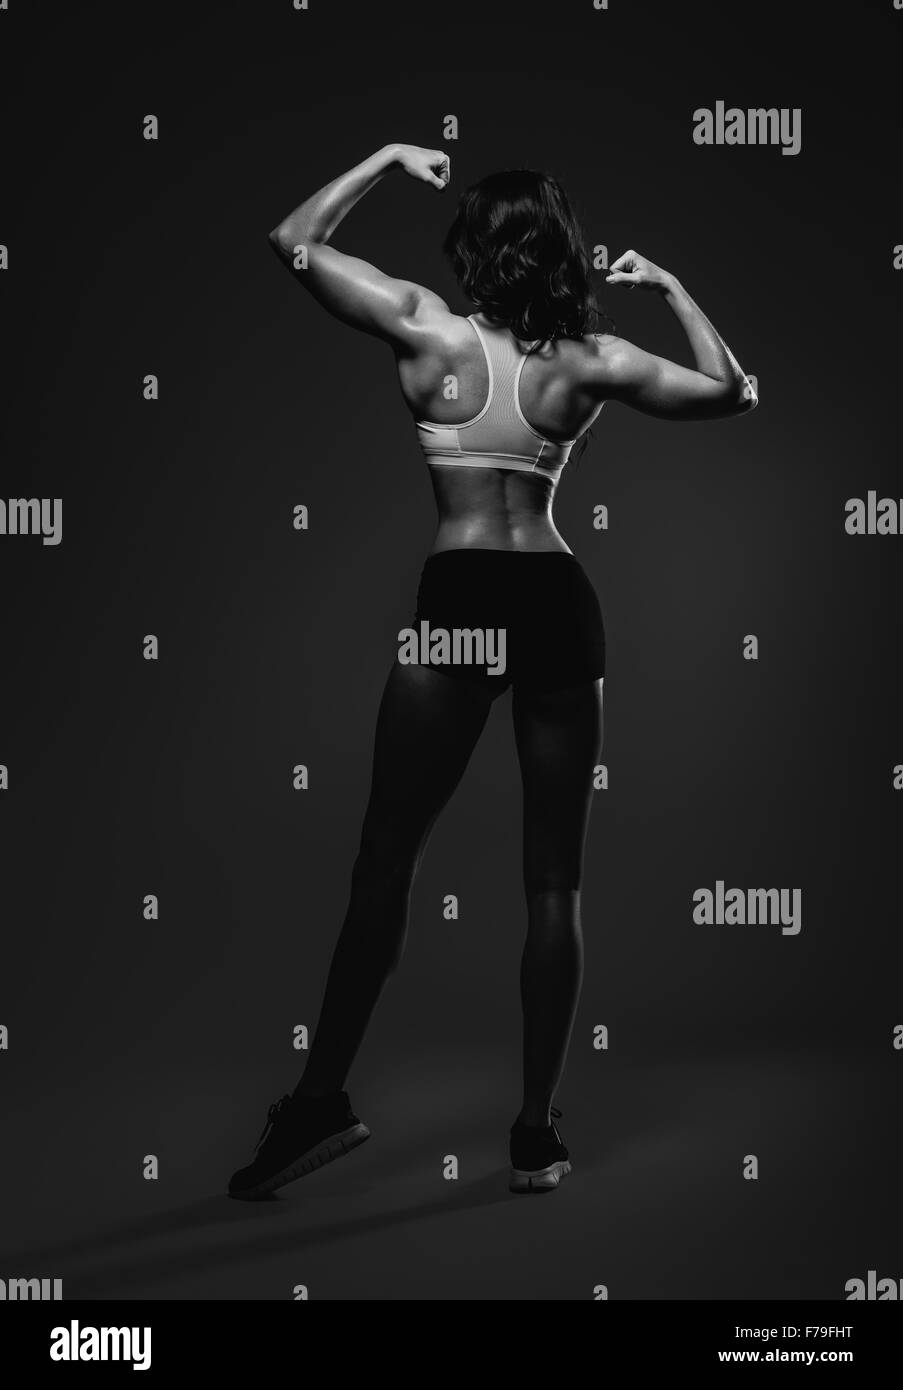 Athletic woman showing back and biceps muscles. Full length, studio shot - Stock Image